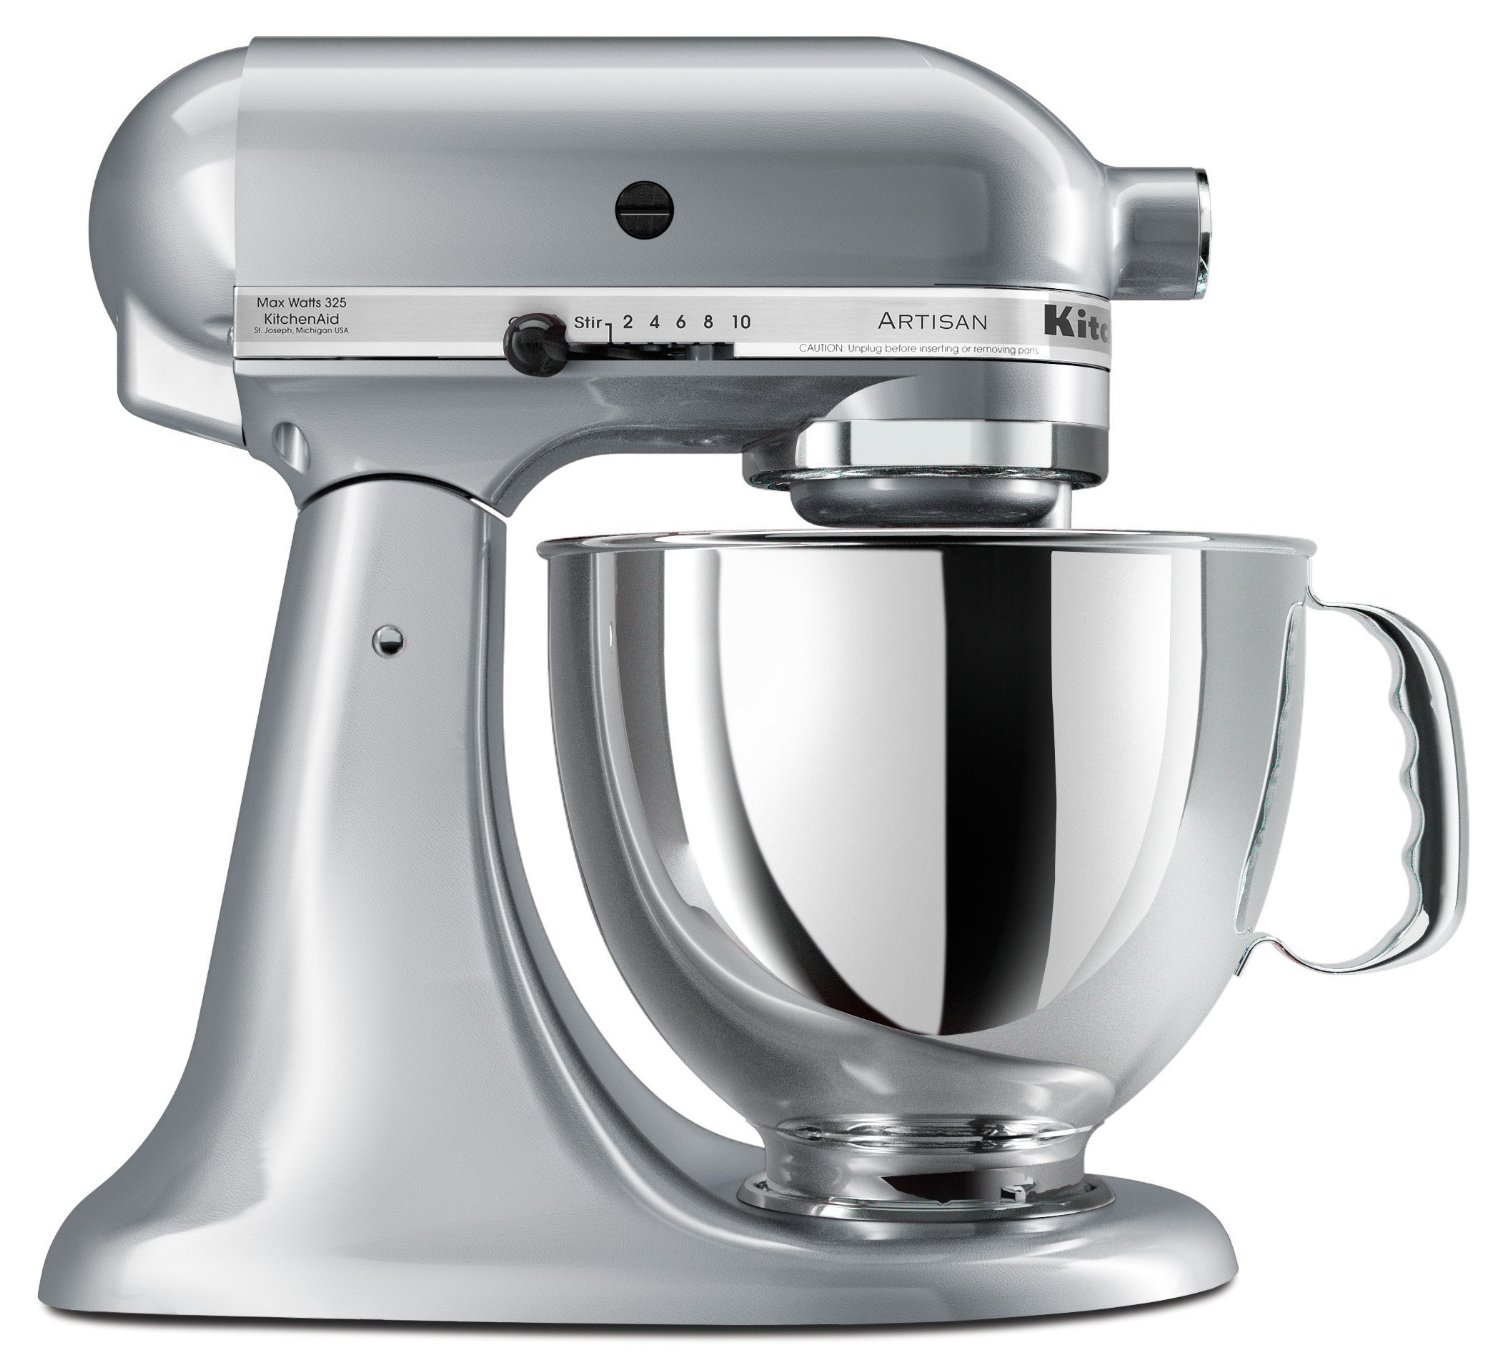 Giveaway Kitchenaid Mixer! (ends 1231, Worldwide. Neutral Dining Room Paint Colors. Mid Century Dining Rooms. Average Size Area Rug Living Room. Dining Room Modern Decorating Ideas. Living Rooms With Color. Living Room Neutral Colors. Dining Room Corner Bench Seating. Bungalow Living Room Furniture Layout